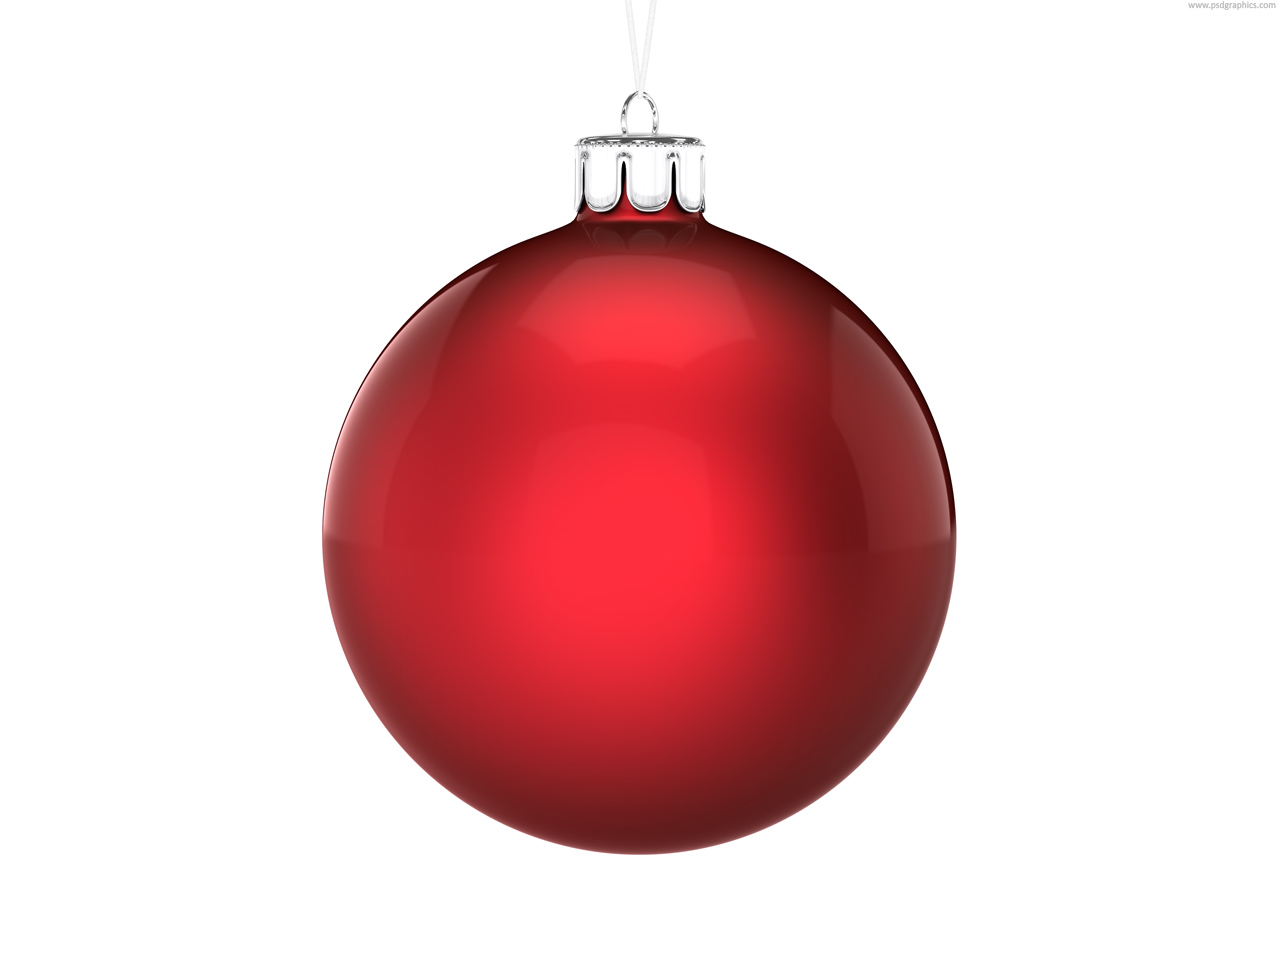 1280x960 Christmas Ornament Ball Balls Happy Holidays Decoration Ornaments